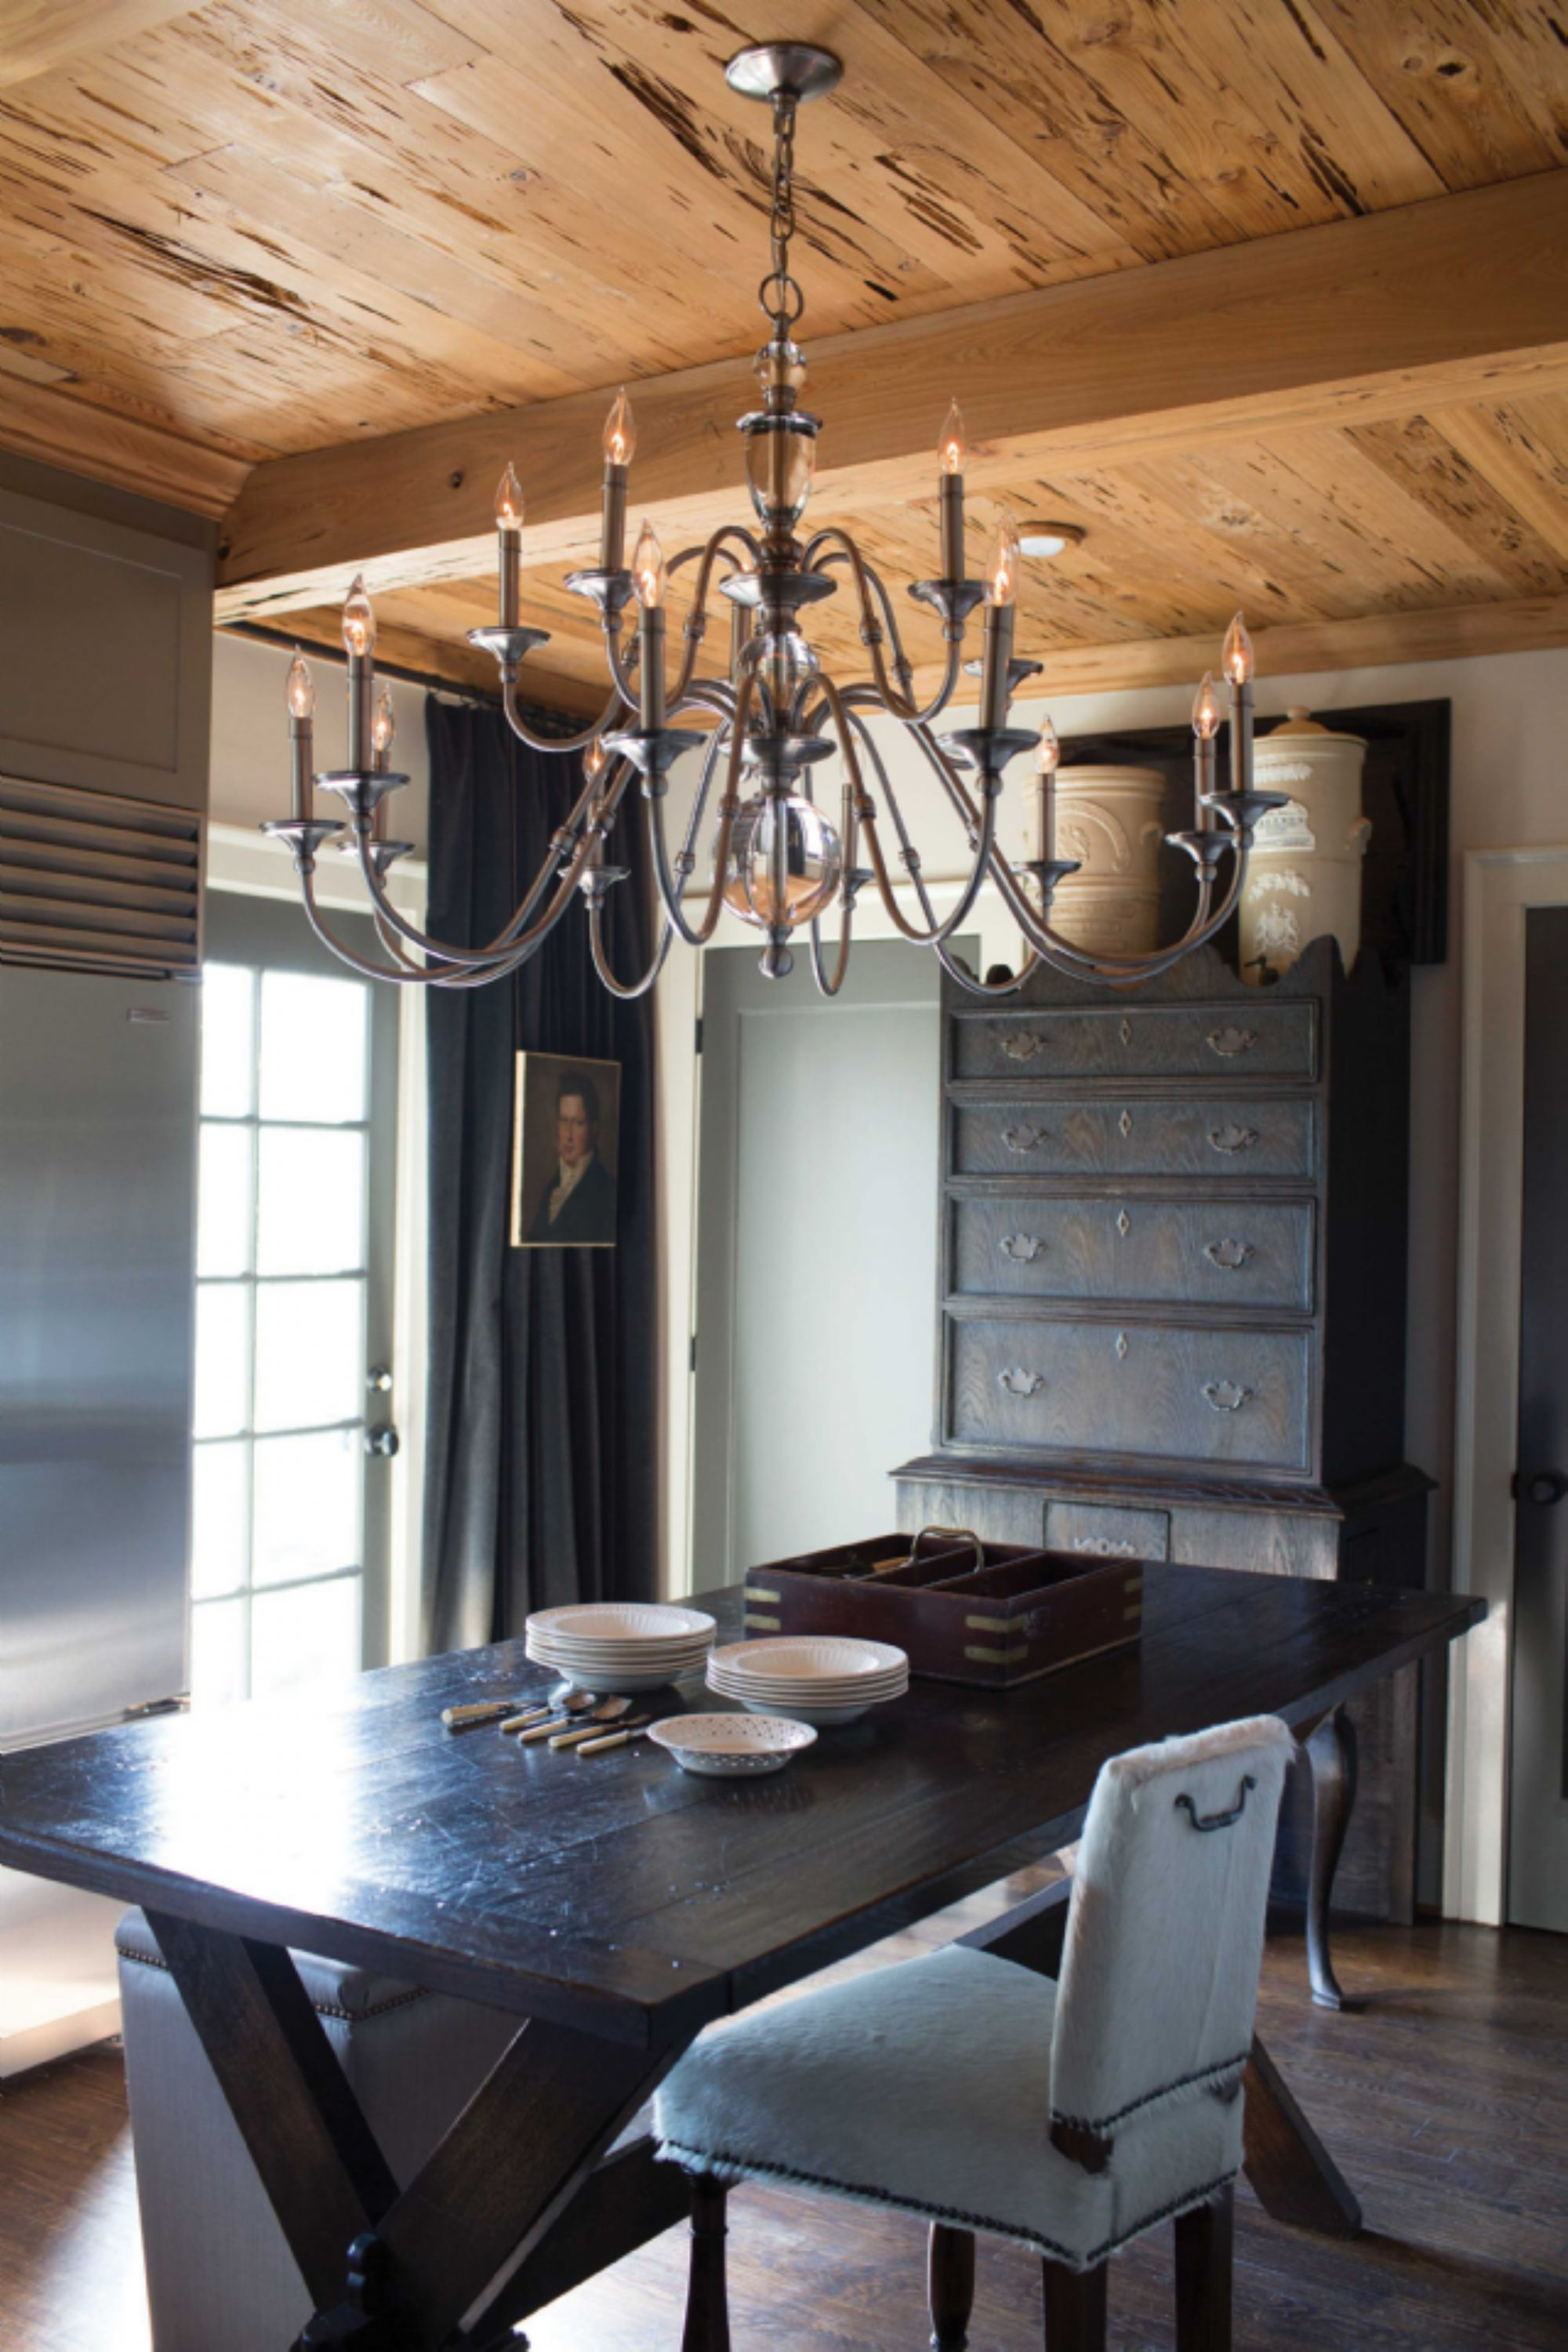 Hinkley Lighting Eleanor Collection Chandelier In Polished Antique Nickel Chandeliers On SaleDining Room